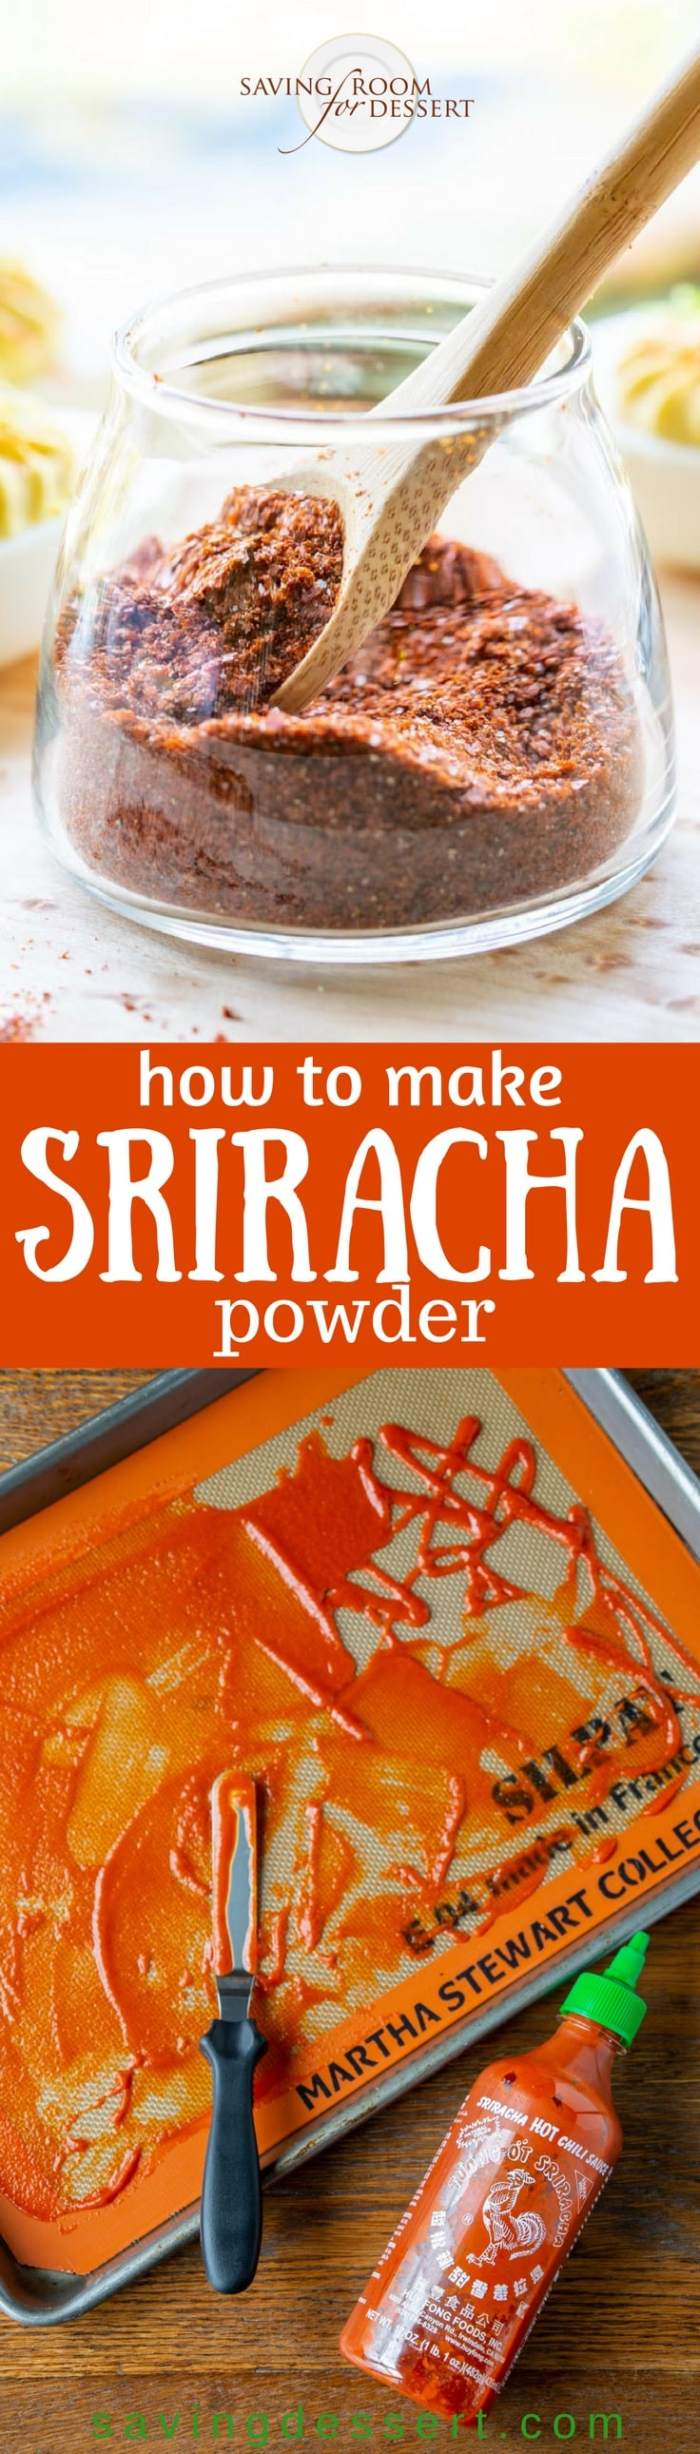 Easy homemade Dry Sriracha Powder Seasoning - intense, spicy, hot and flavorful, you're going to love this sprinkled on just about everything from grilled meats, to tacos, even eggs, vegetables and soups too! www.savingdessert.com #savingroomfordessert #sriracha #condiment #seasoning #spicy